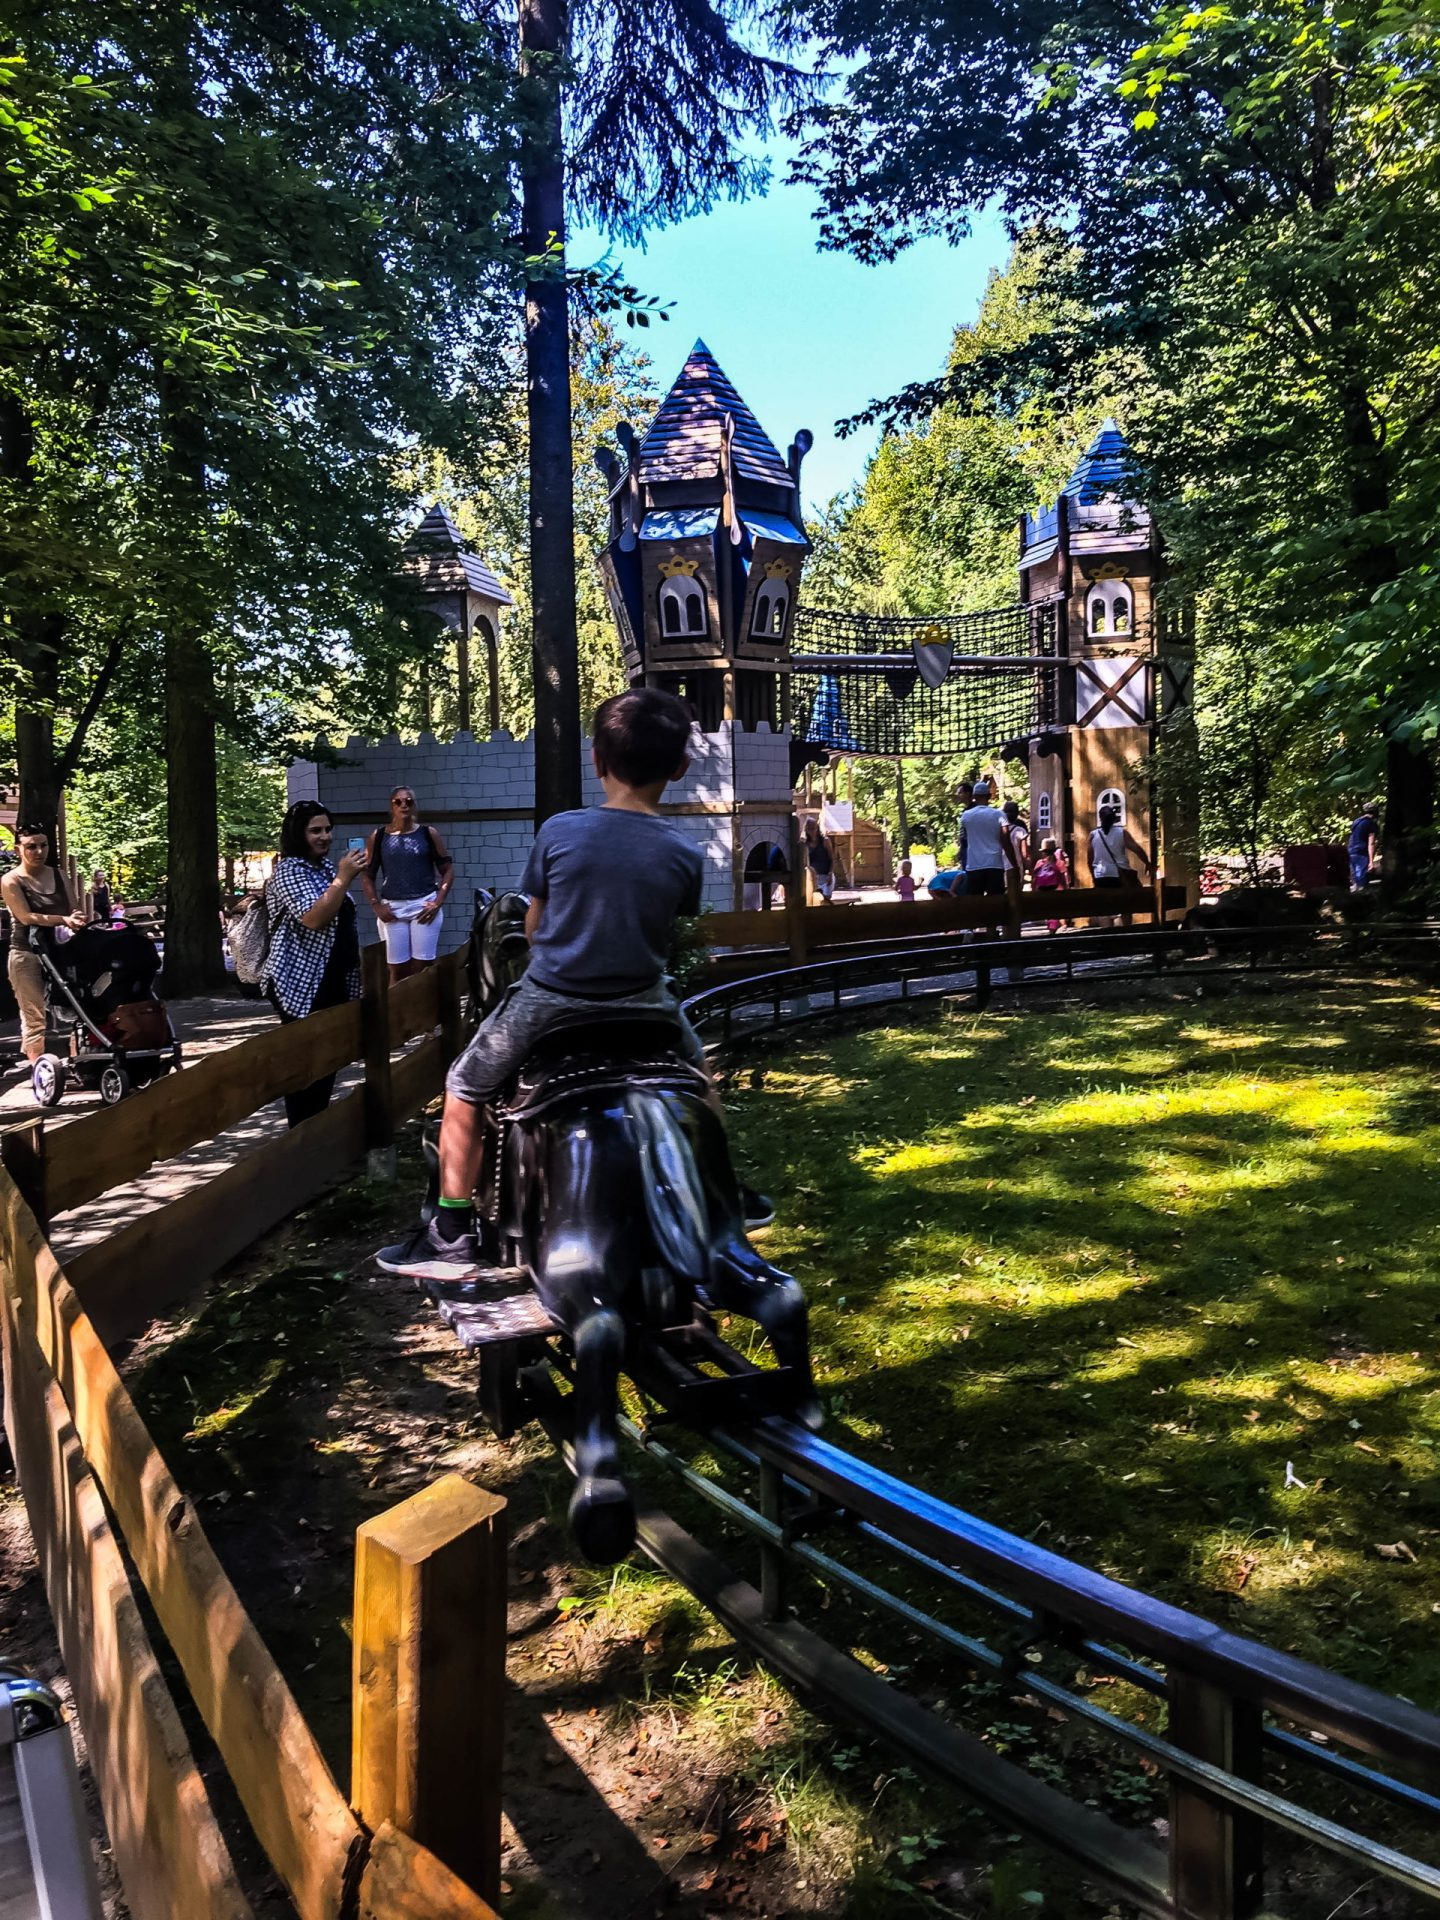 The little mechanical horse ride in the trees at Märchen-Paradies.